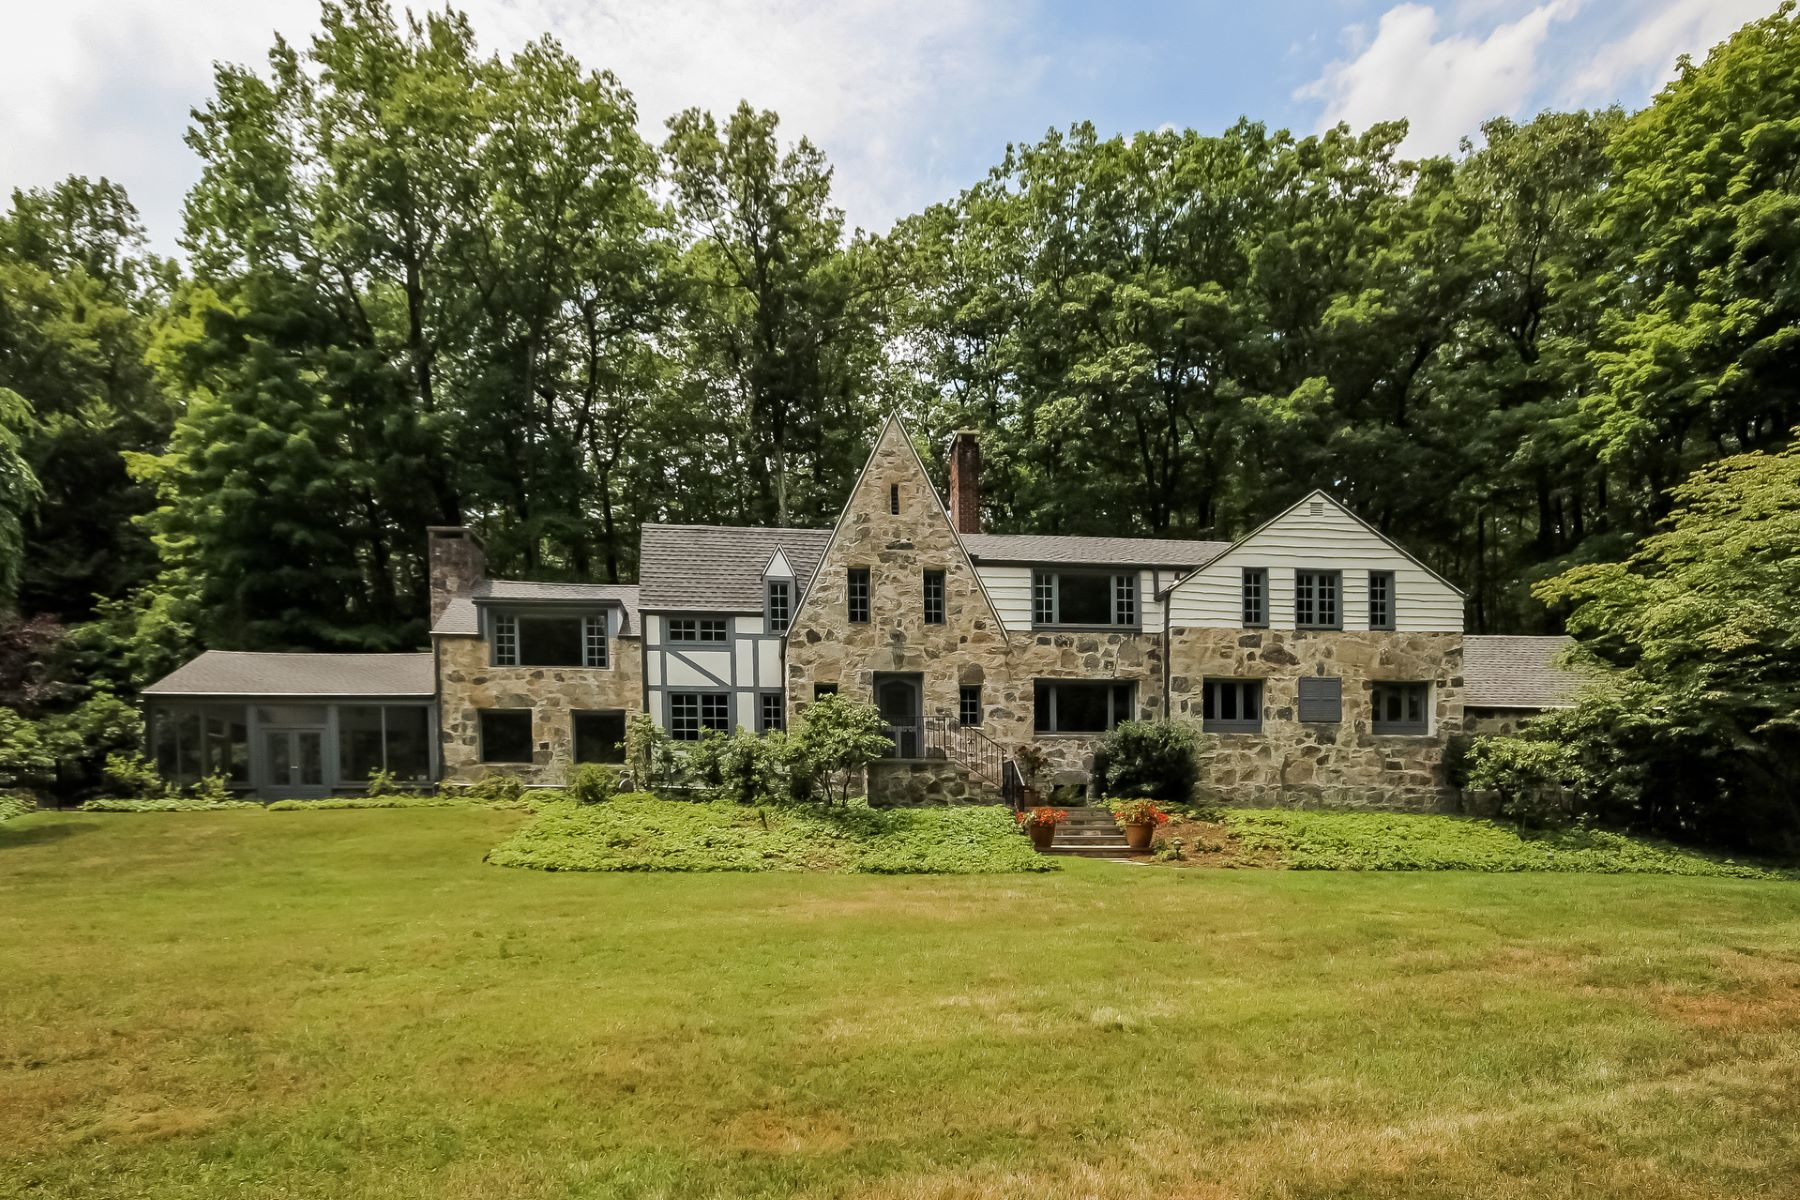 Casa Unifamiliar por un Venta en North Stamford Tudor 133 Laurel Road Stamford, Connecticut 06903 Estados Unidos